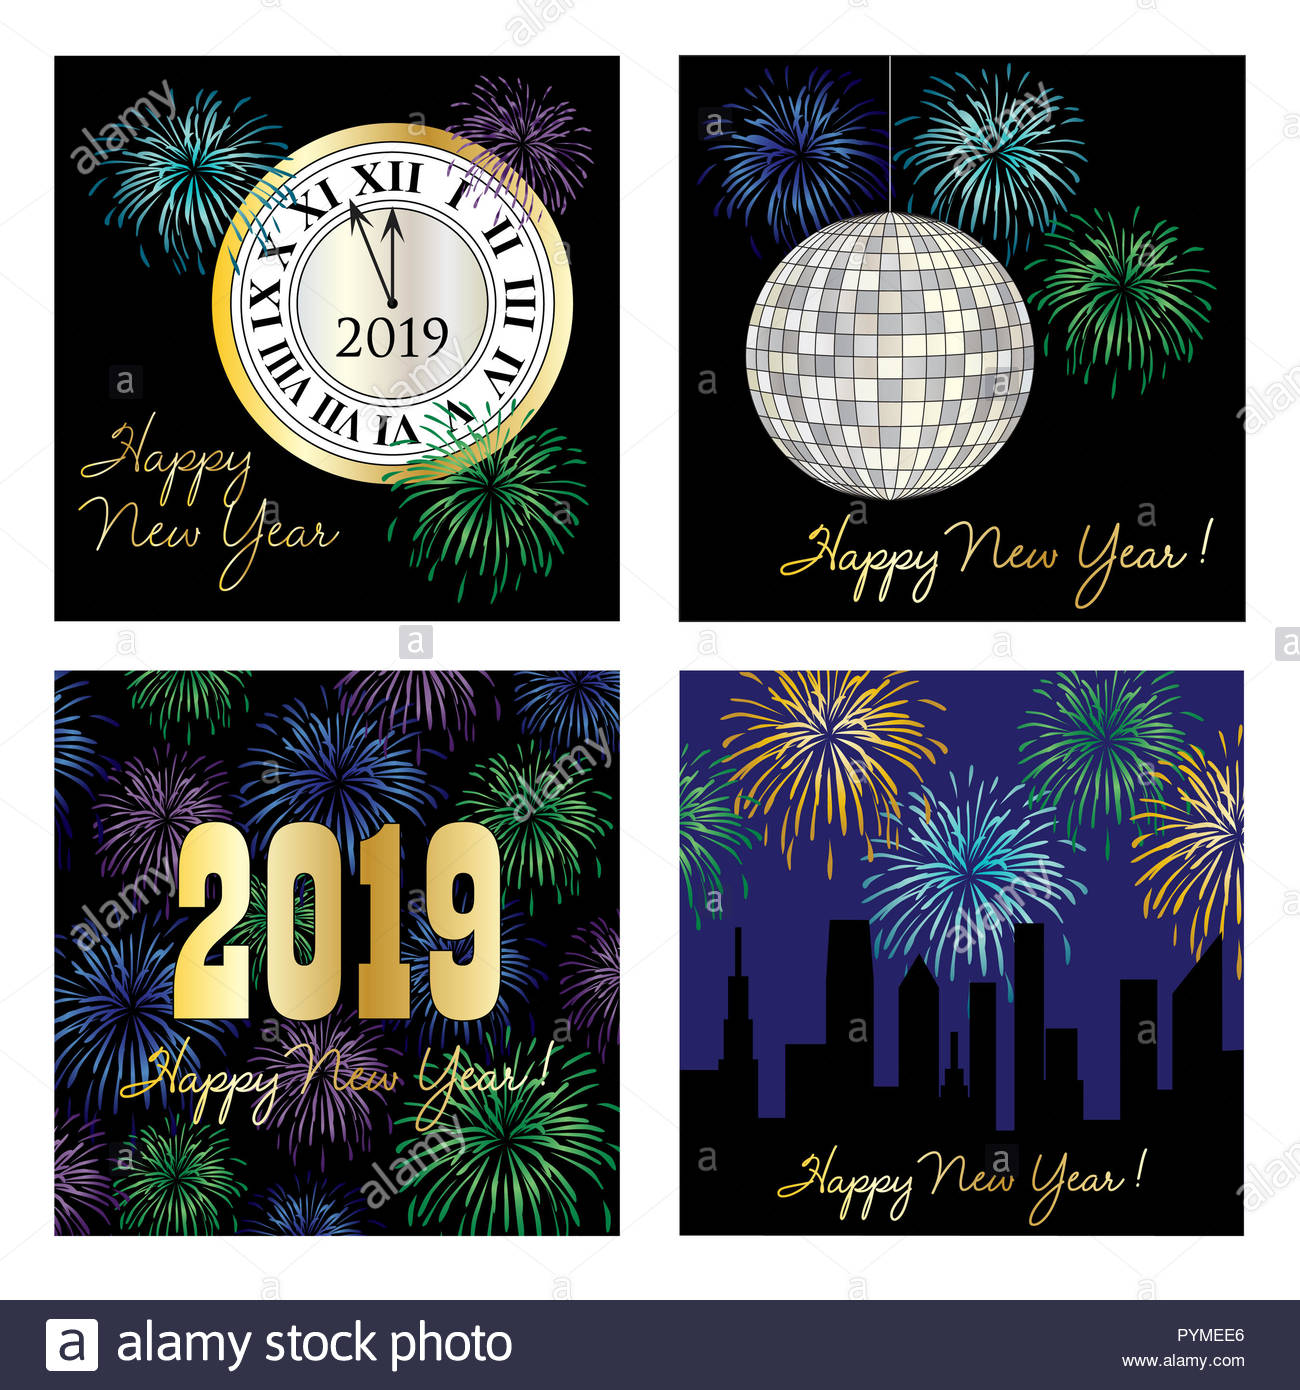 New Years eve 2019 square vector graphics Photo Stock